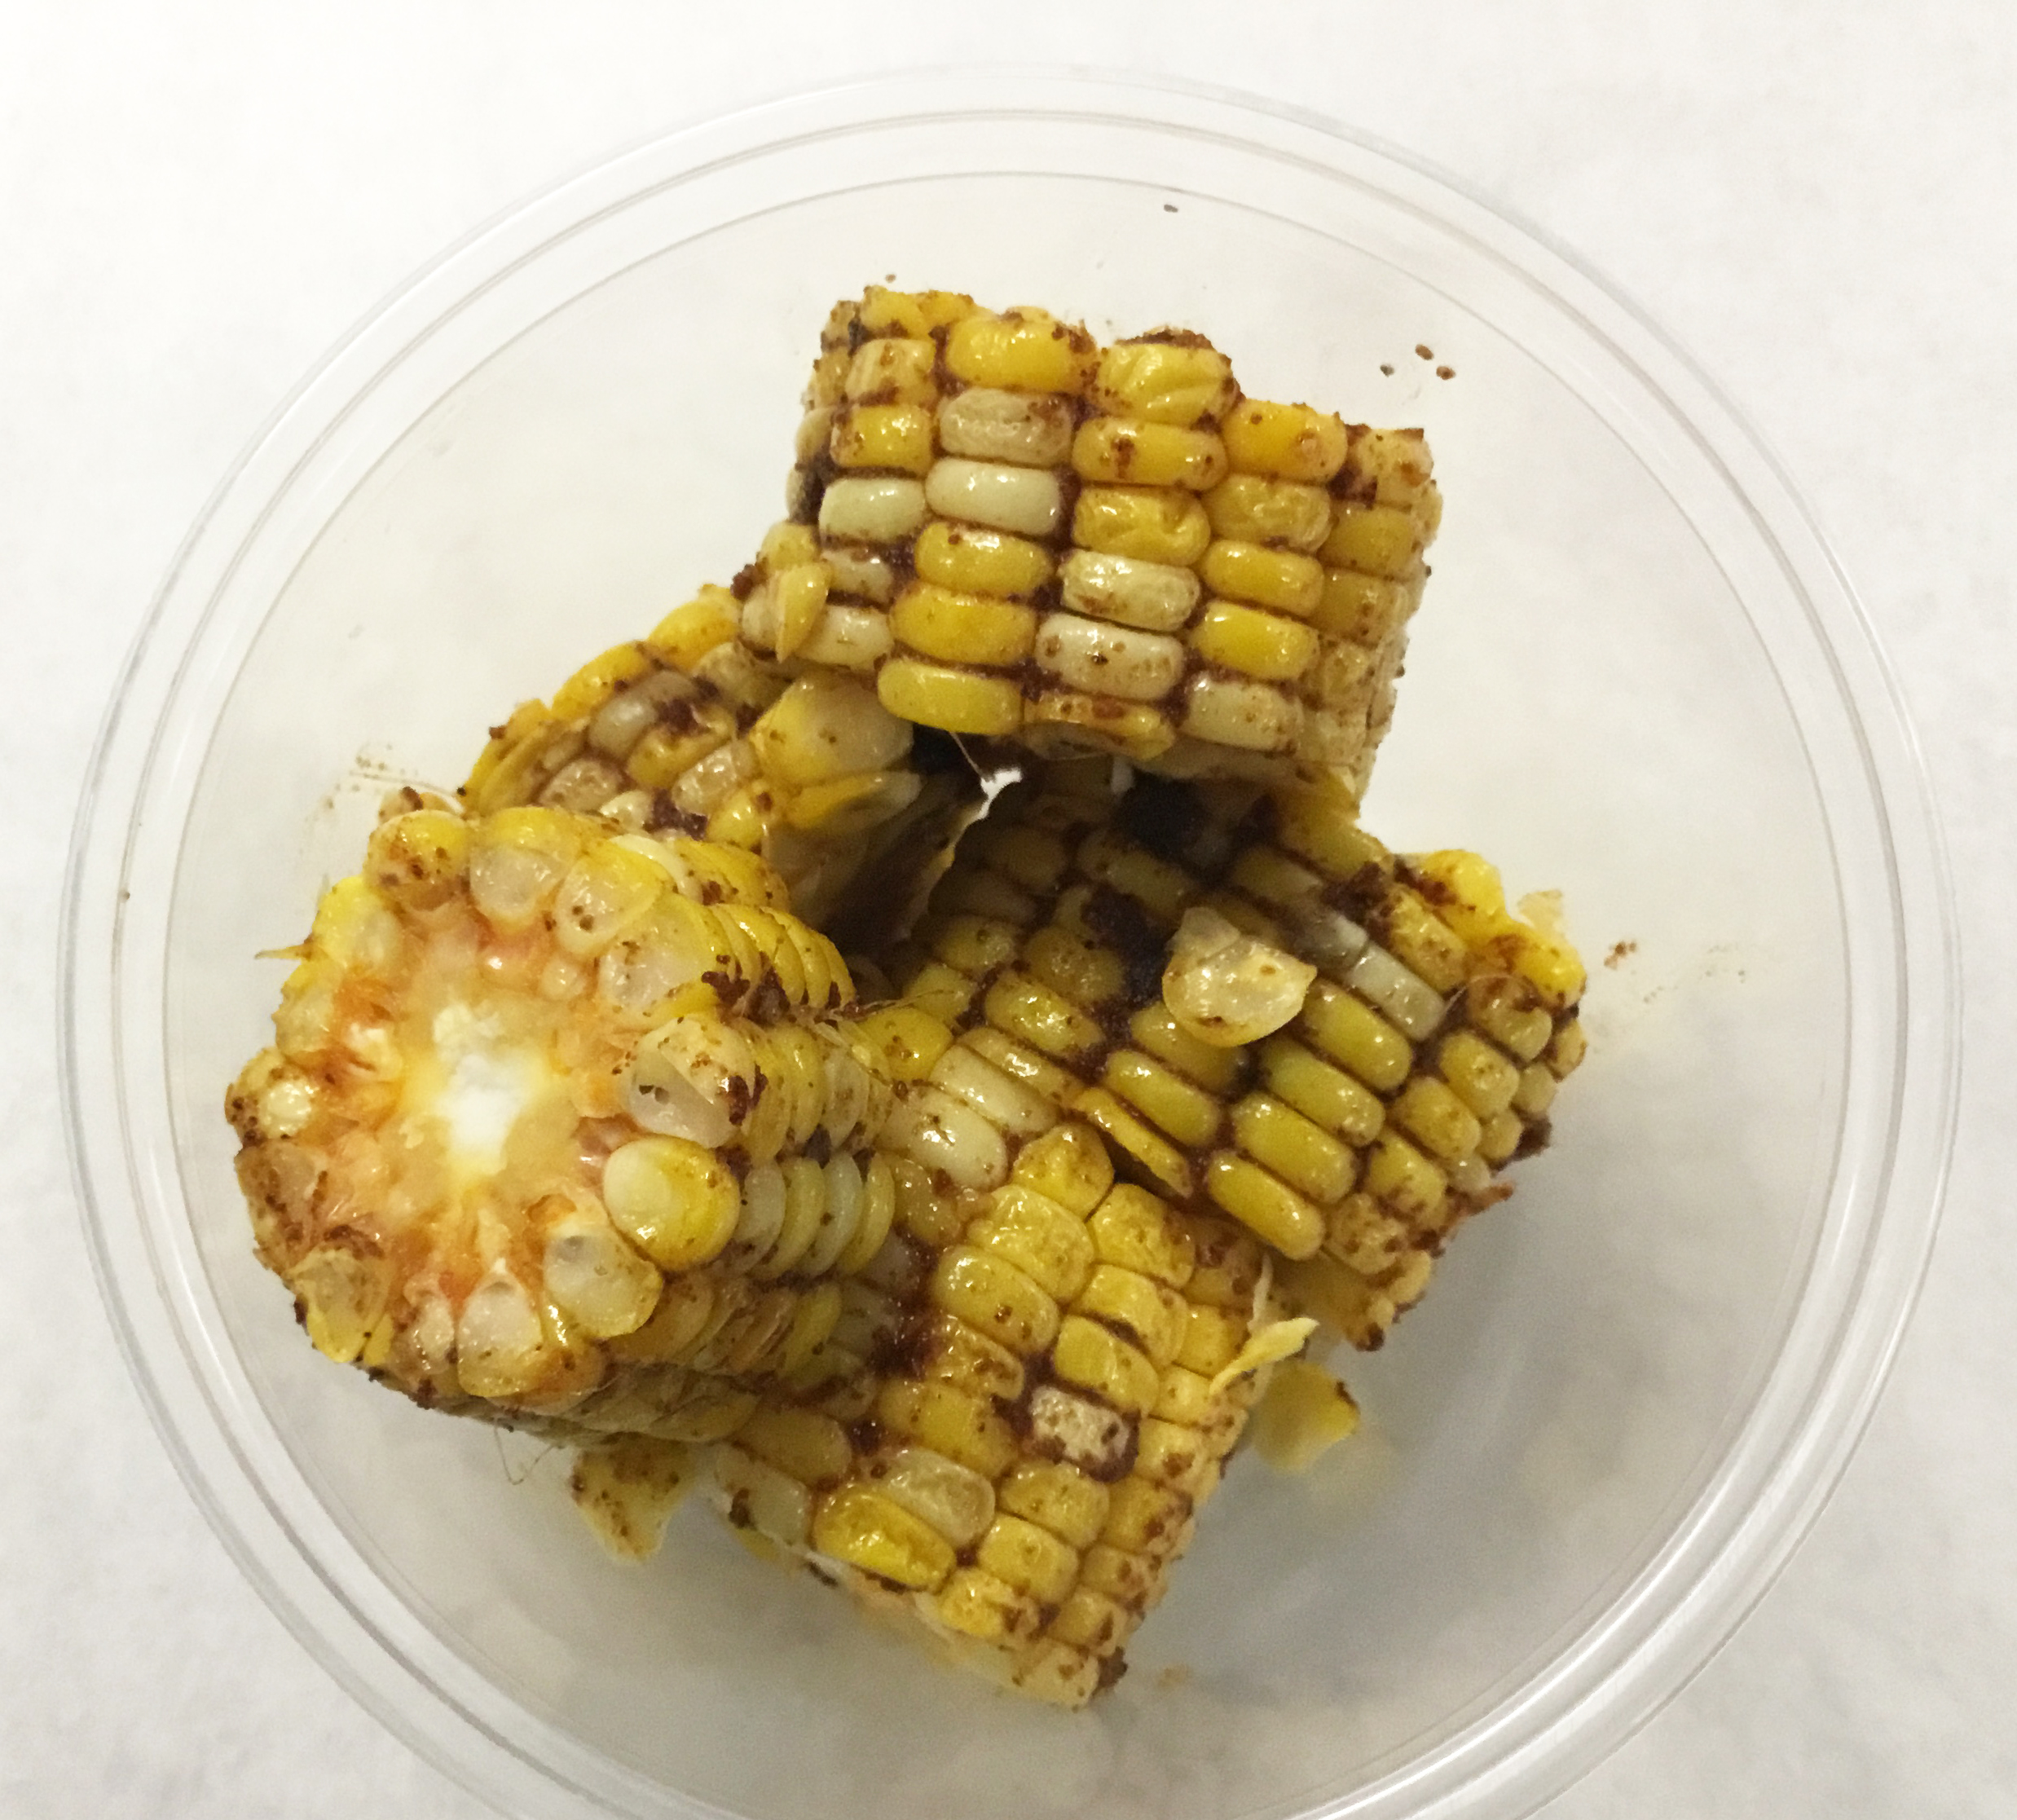 Corn on the cob baked with chili, paprika, mustard and garlic.